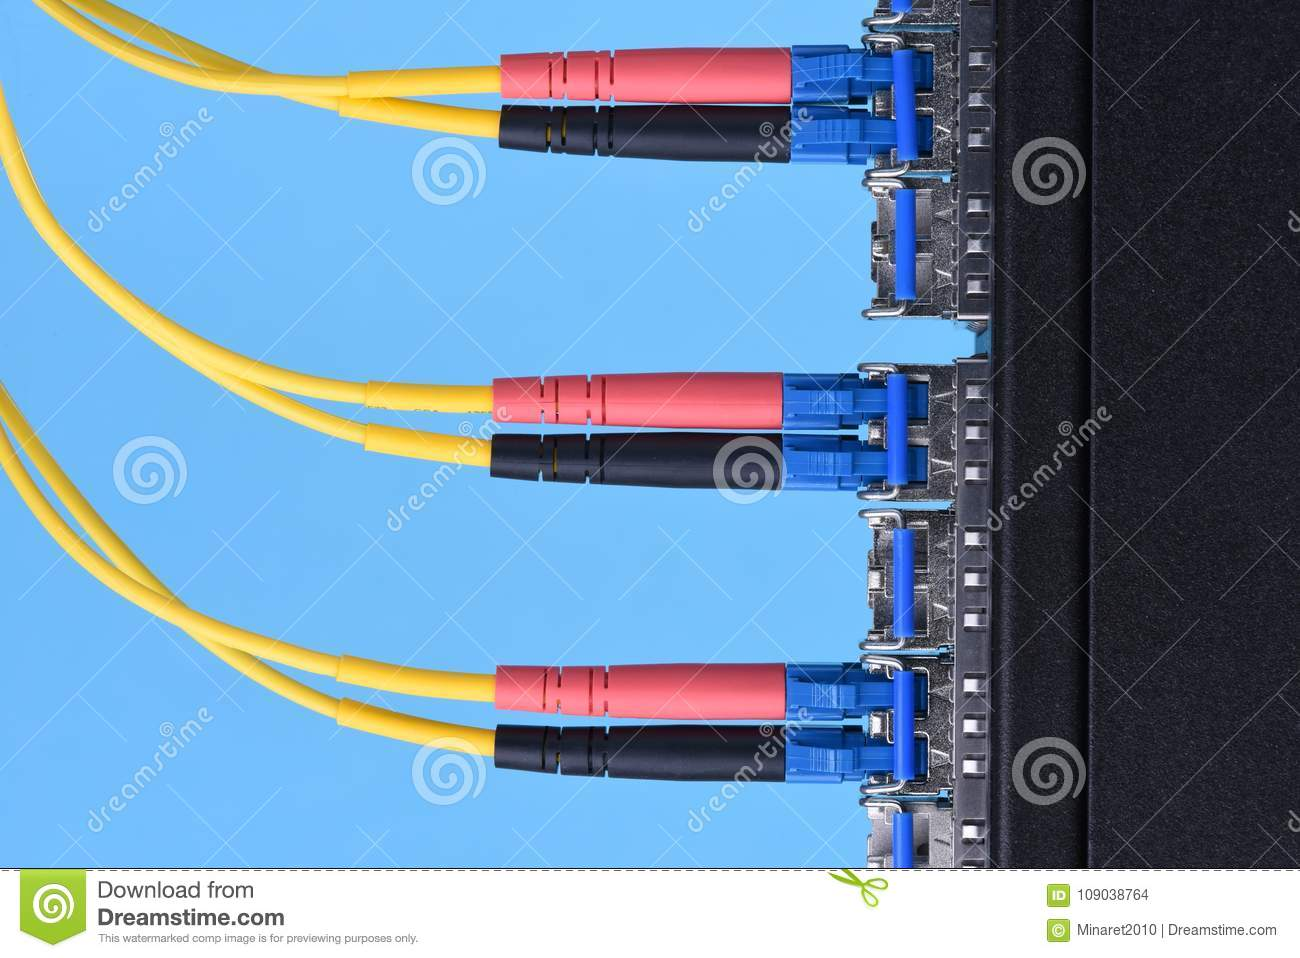 Diagram For Fiber Optic Media Converter Further Fiber Optic Cable